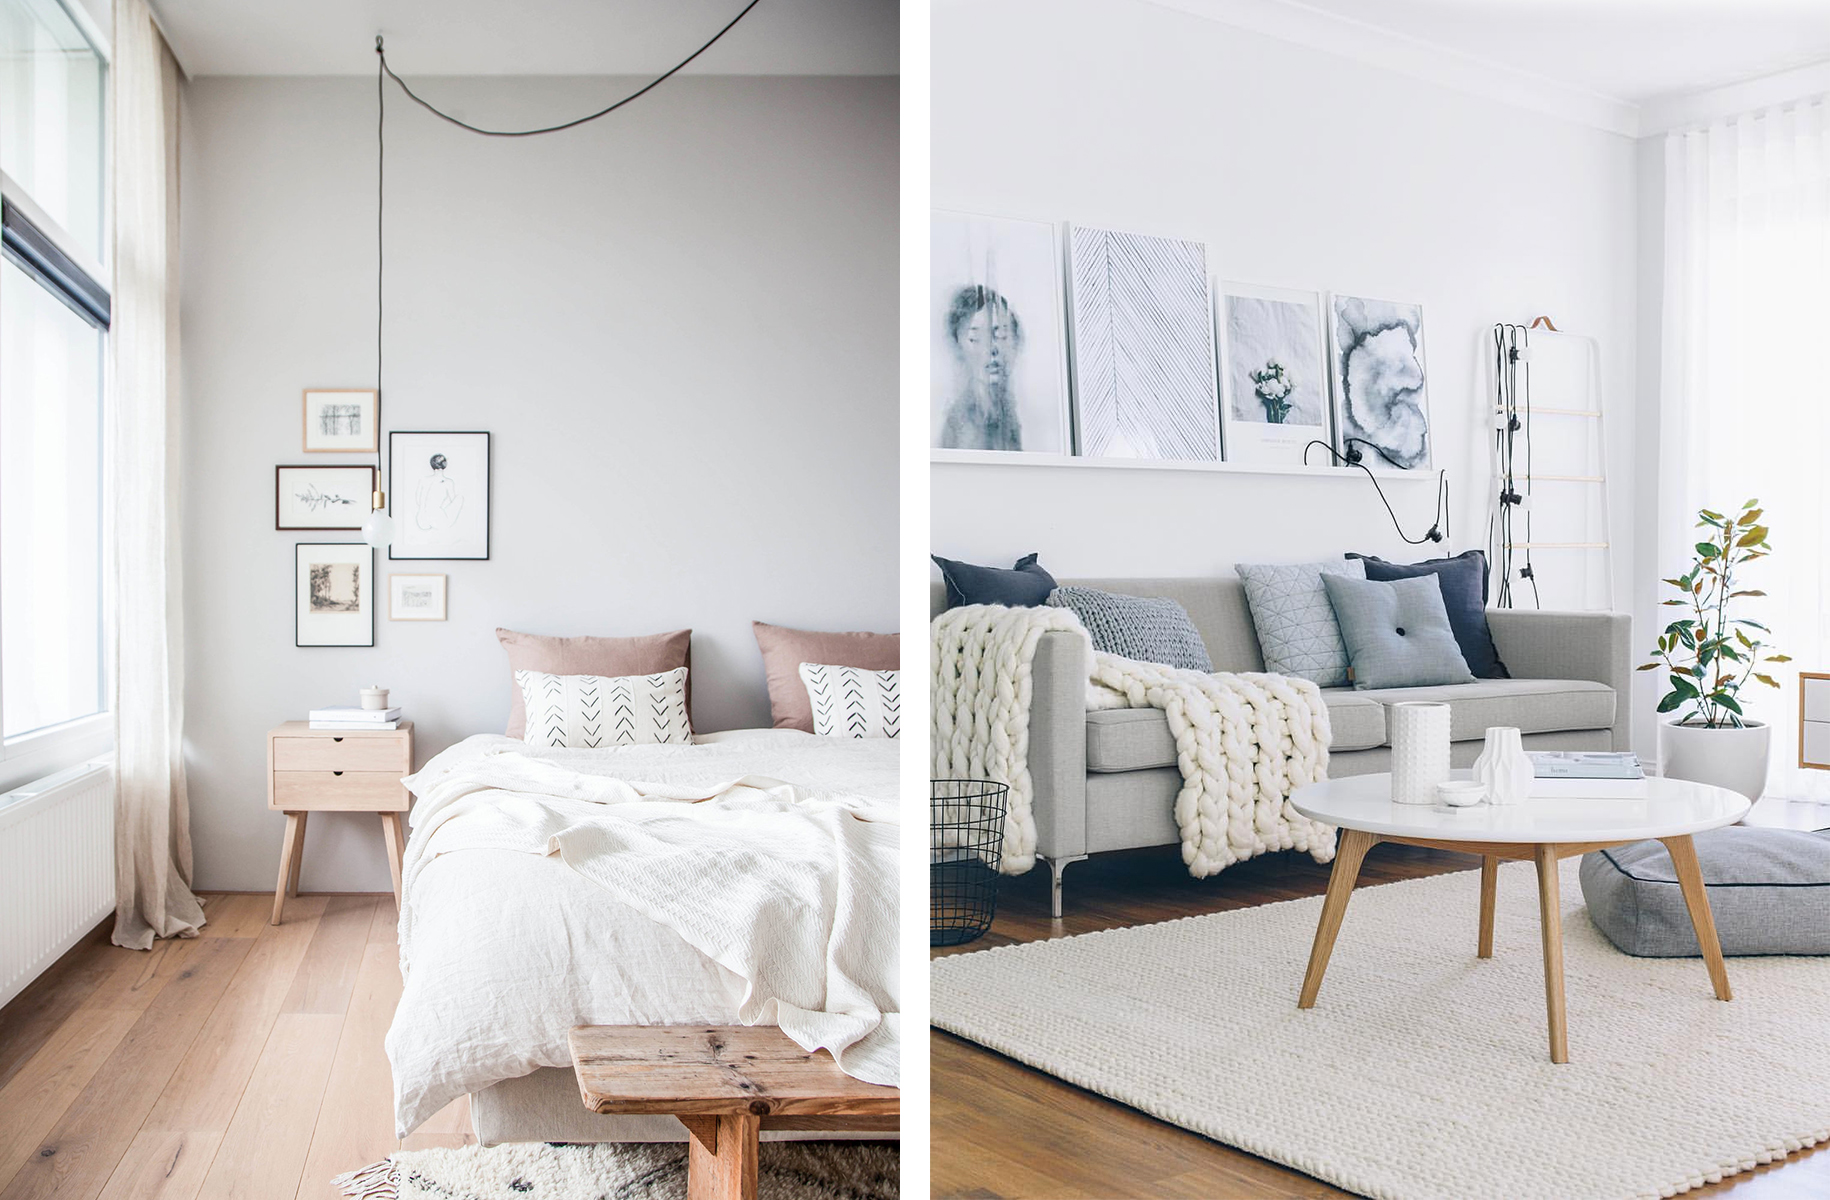 top 10 tips for adding scandinavian style to your home happy grey lucky. Black Bedroom Furniture Sets. Home Design Ideas